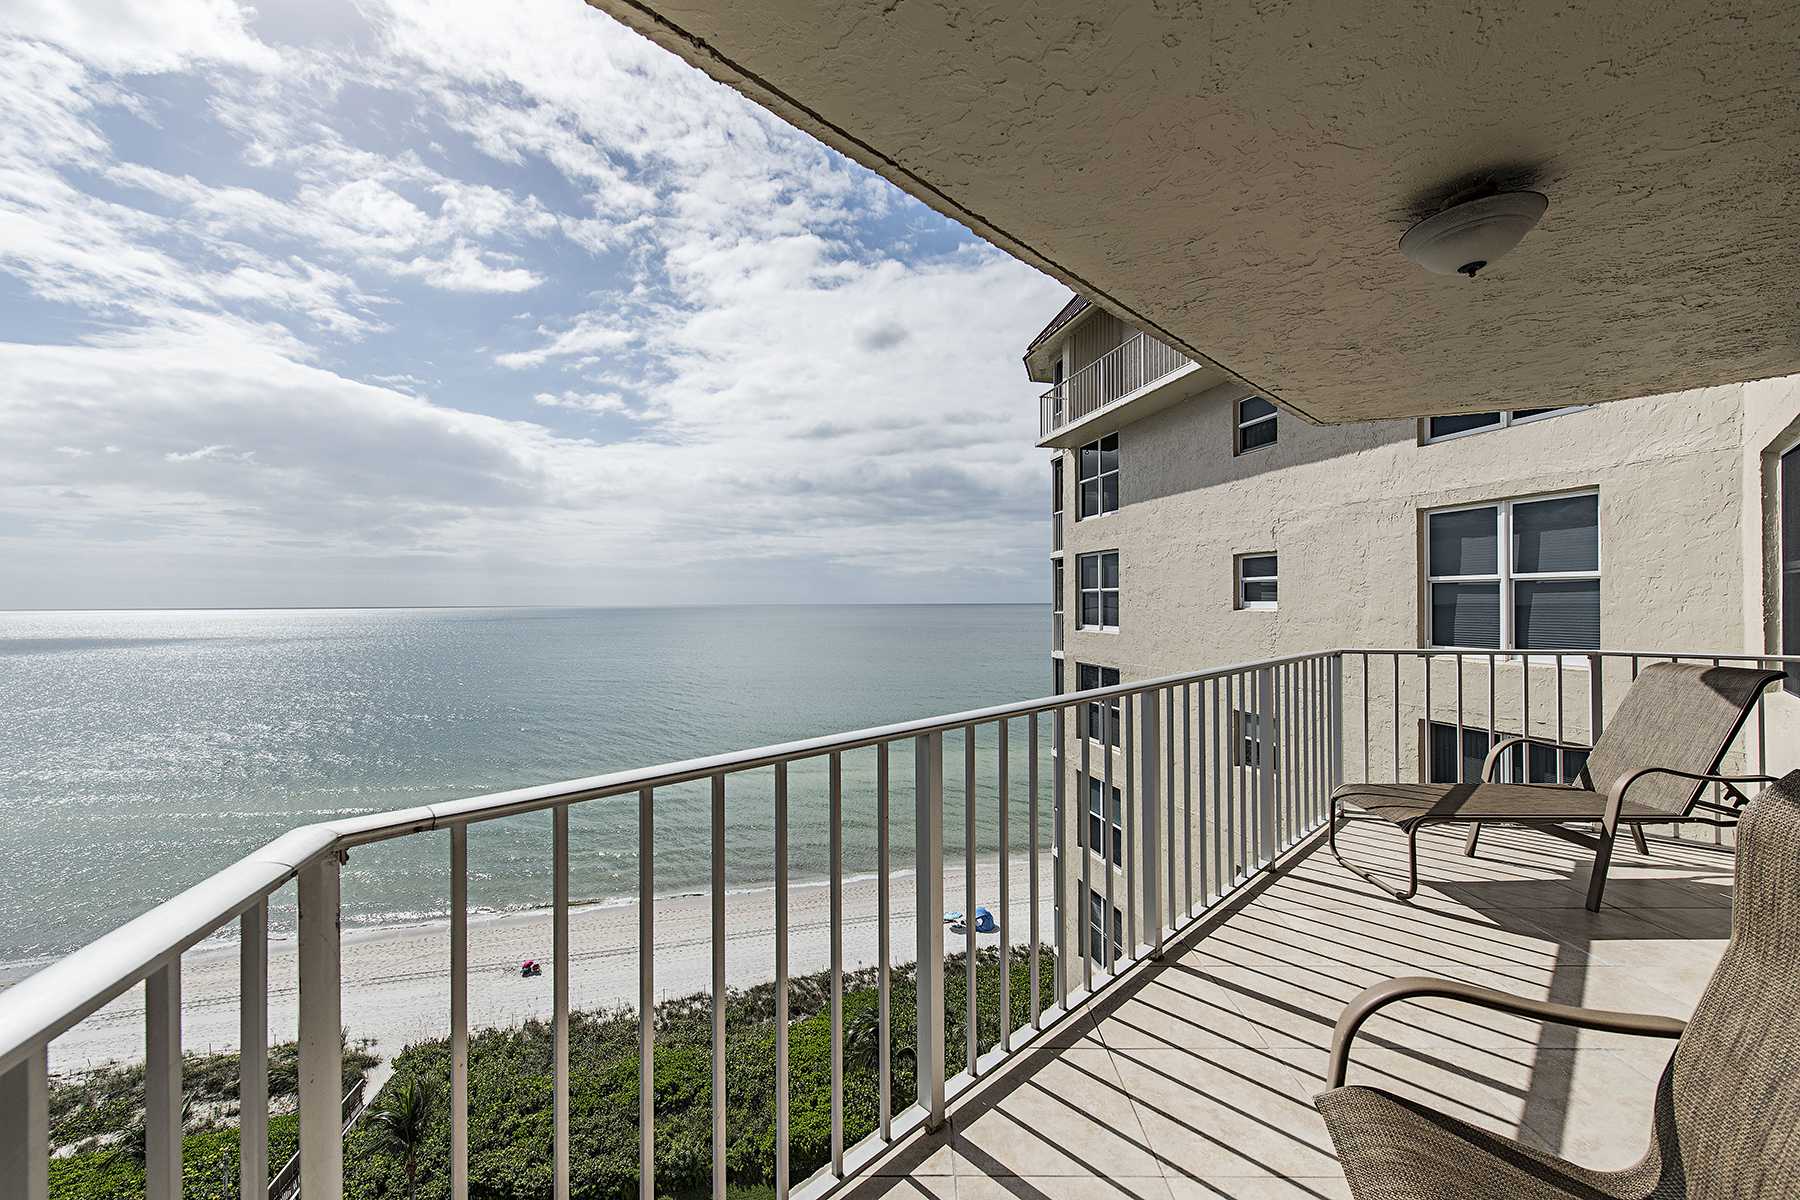 Condominium for Rent at VANDERBILT SHORES - SEVILLE 10701 Gulf Shore Dr 1200, Naples, Florida 34108 United States